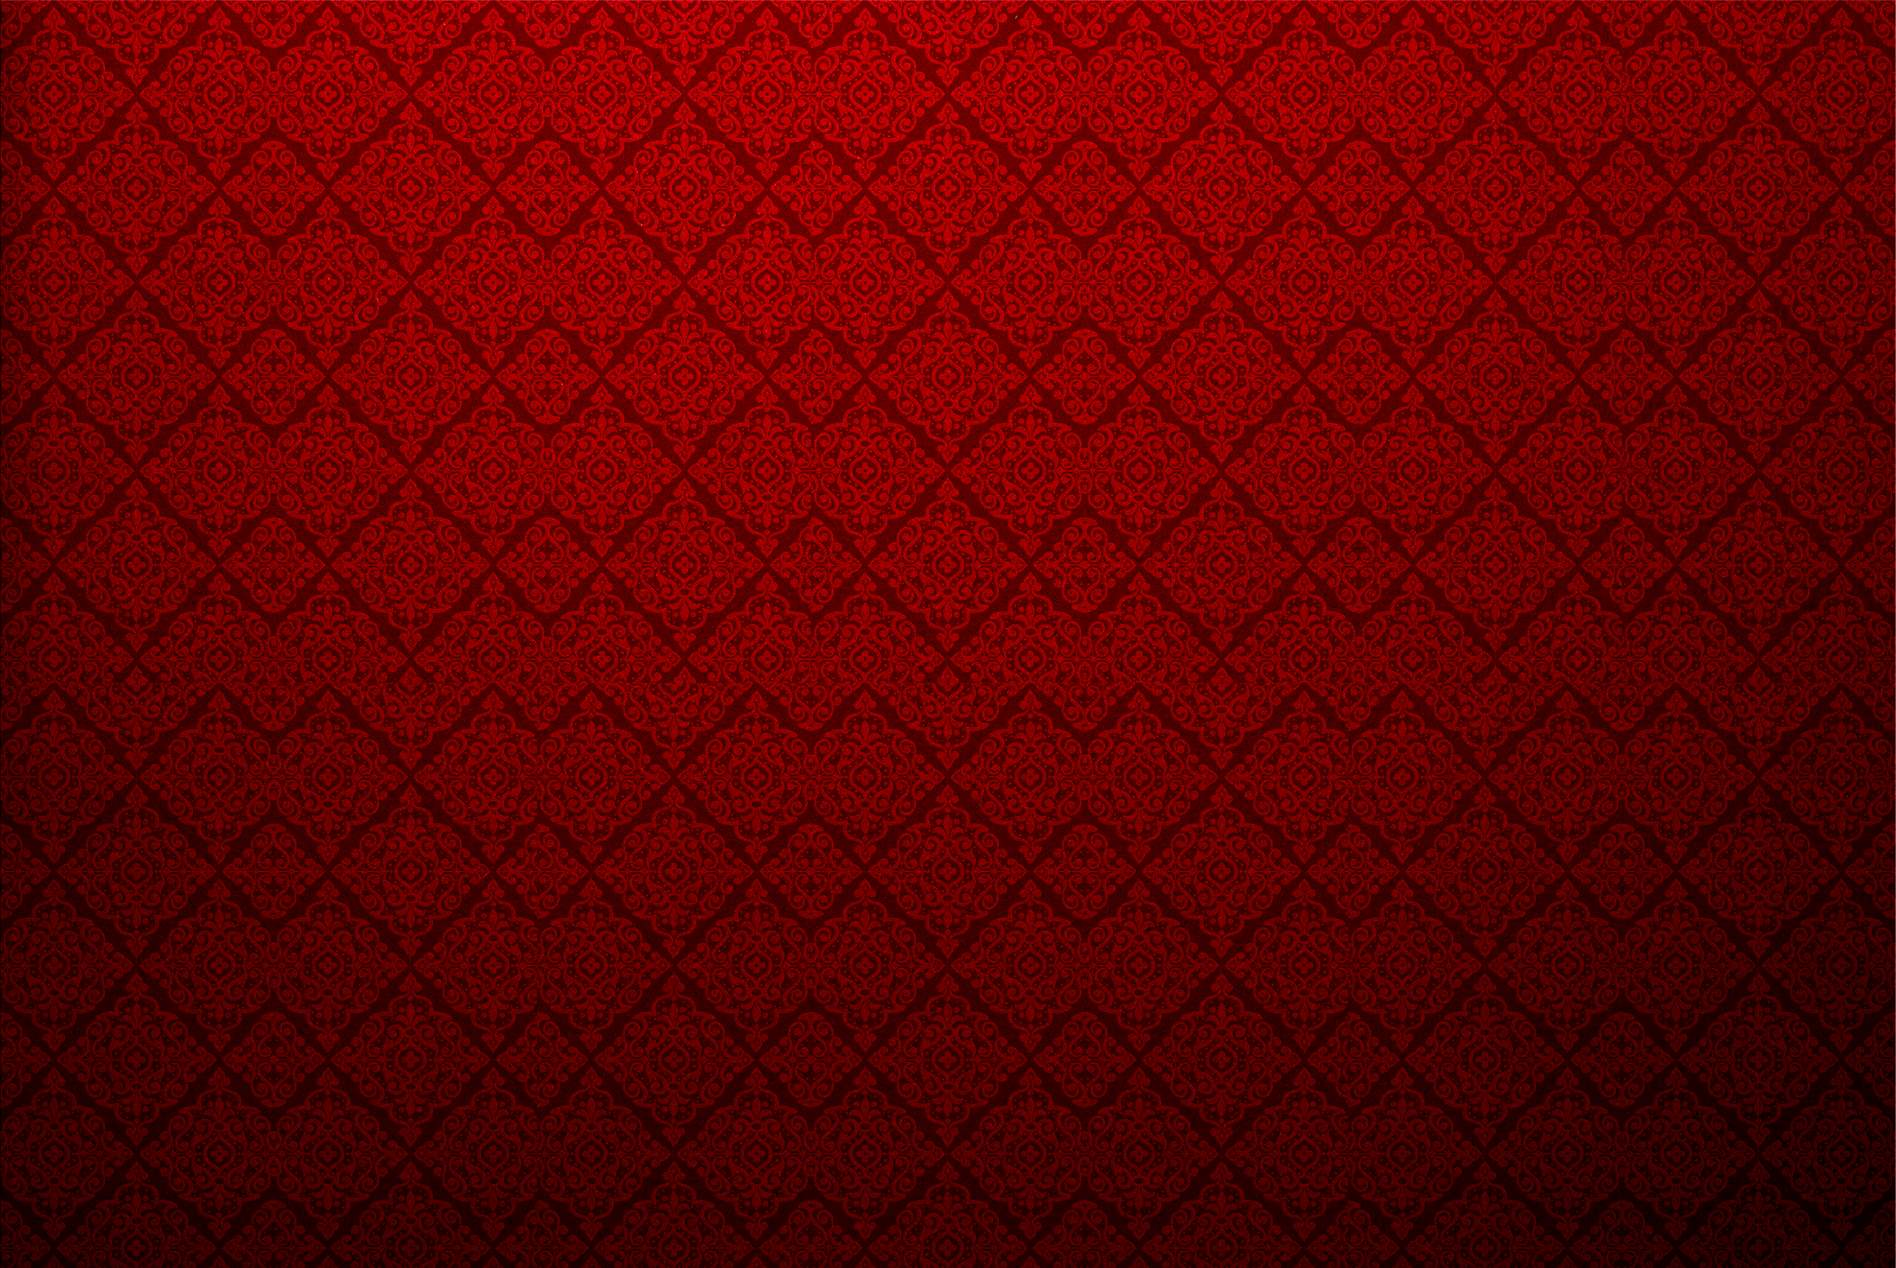 Red Damask Wallpapers 31 Wallpapers Hd Wallpapers